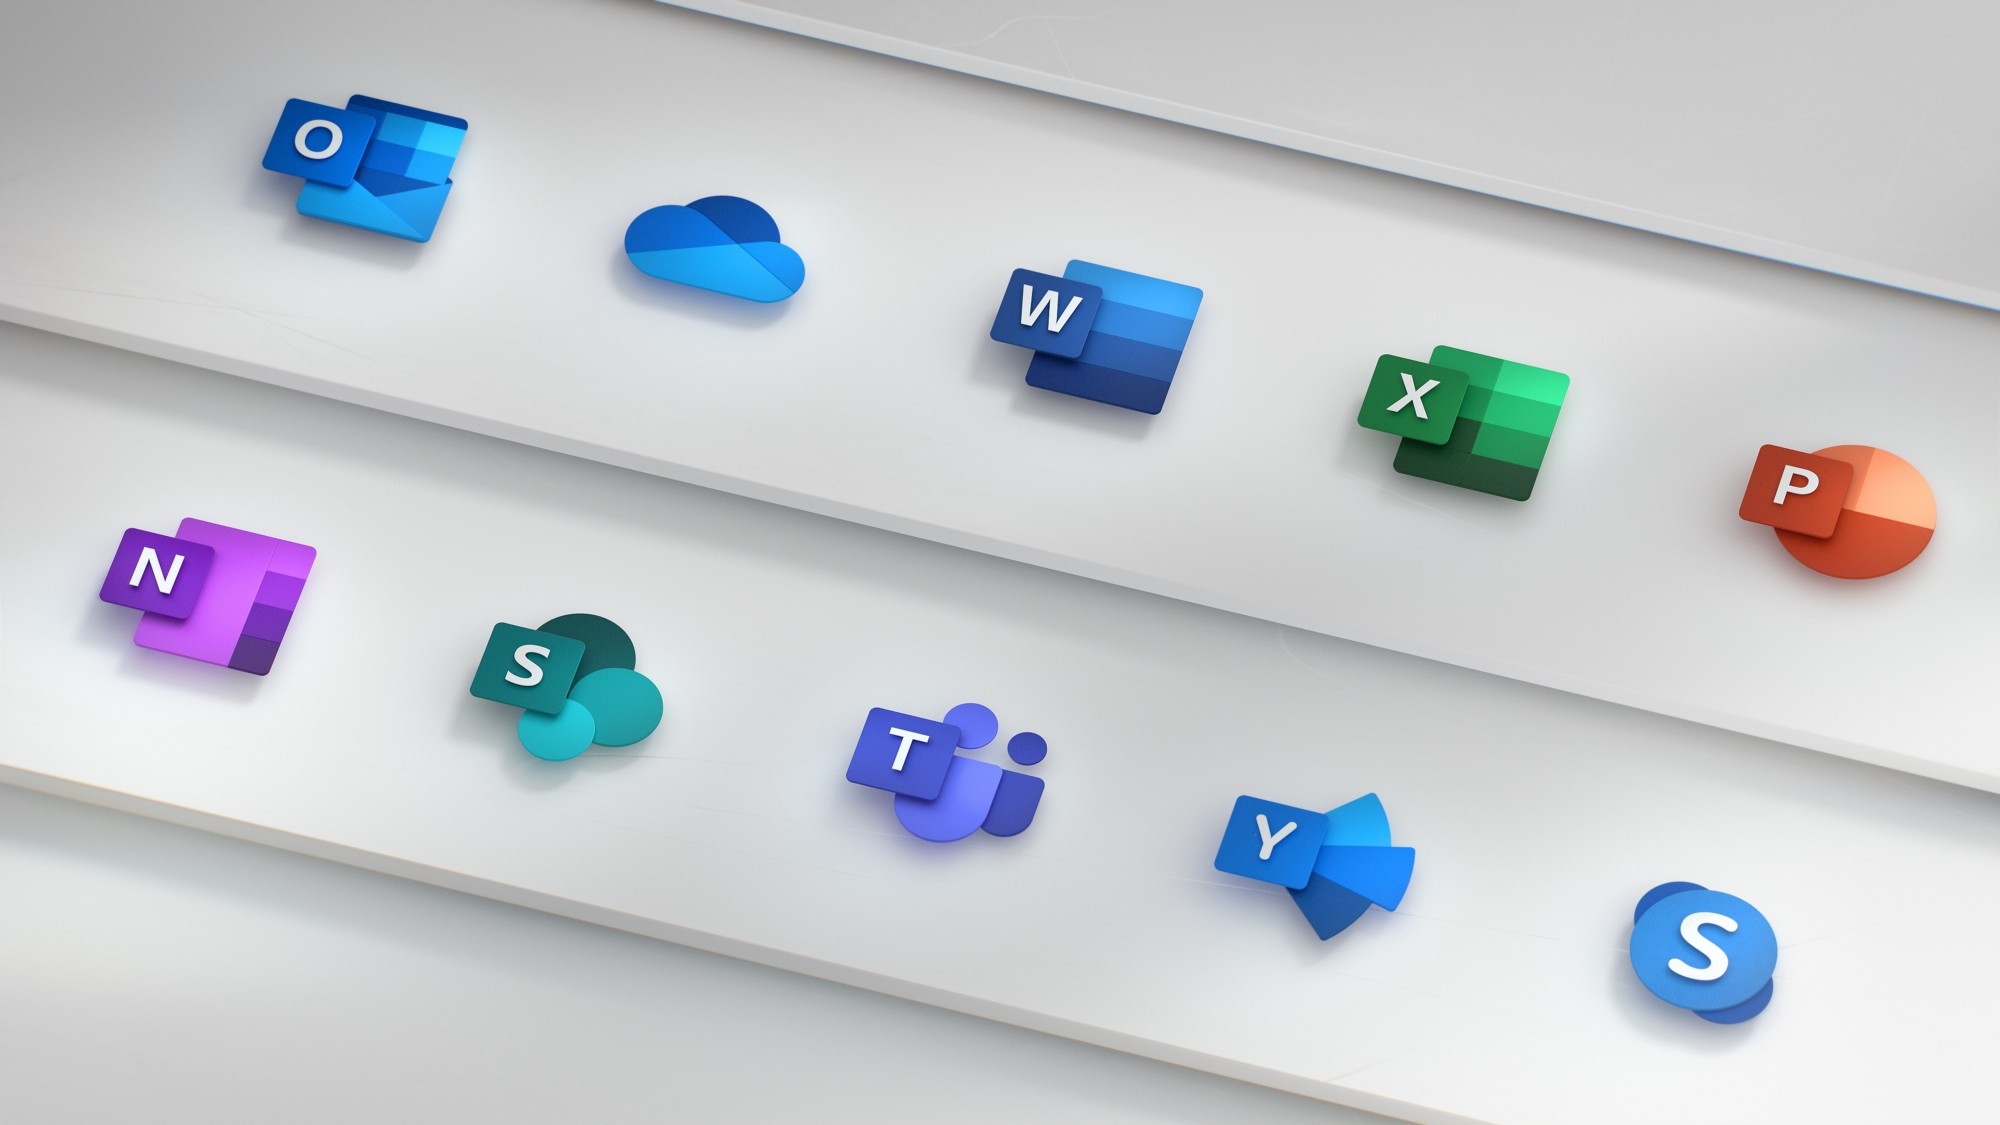 Microsoft Office has pretty new icons but they have a fatal flaw